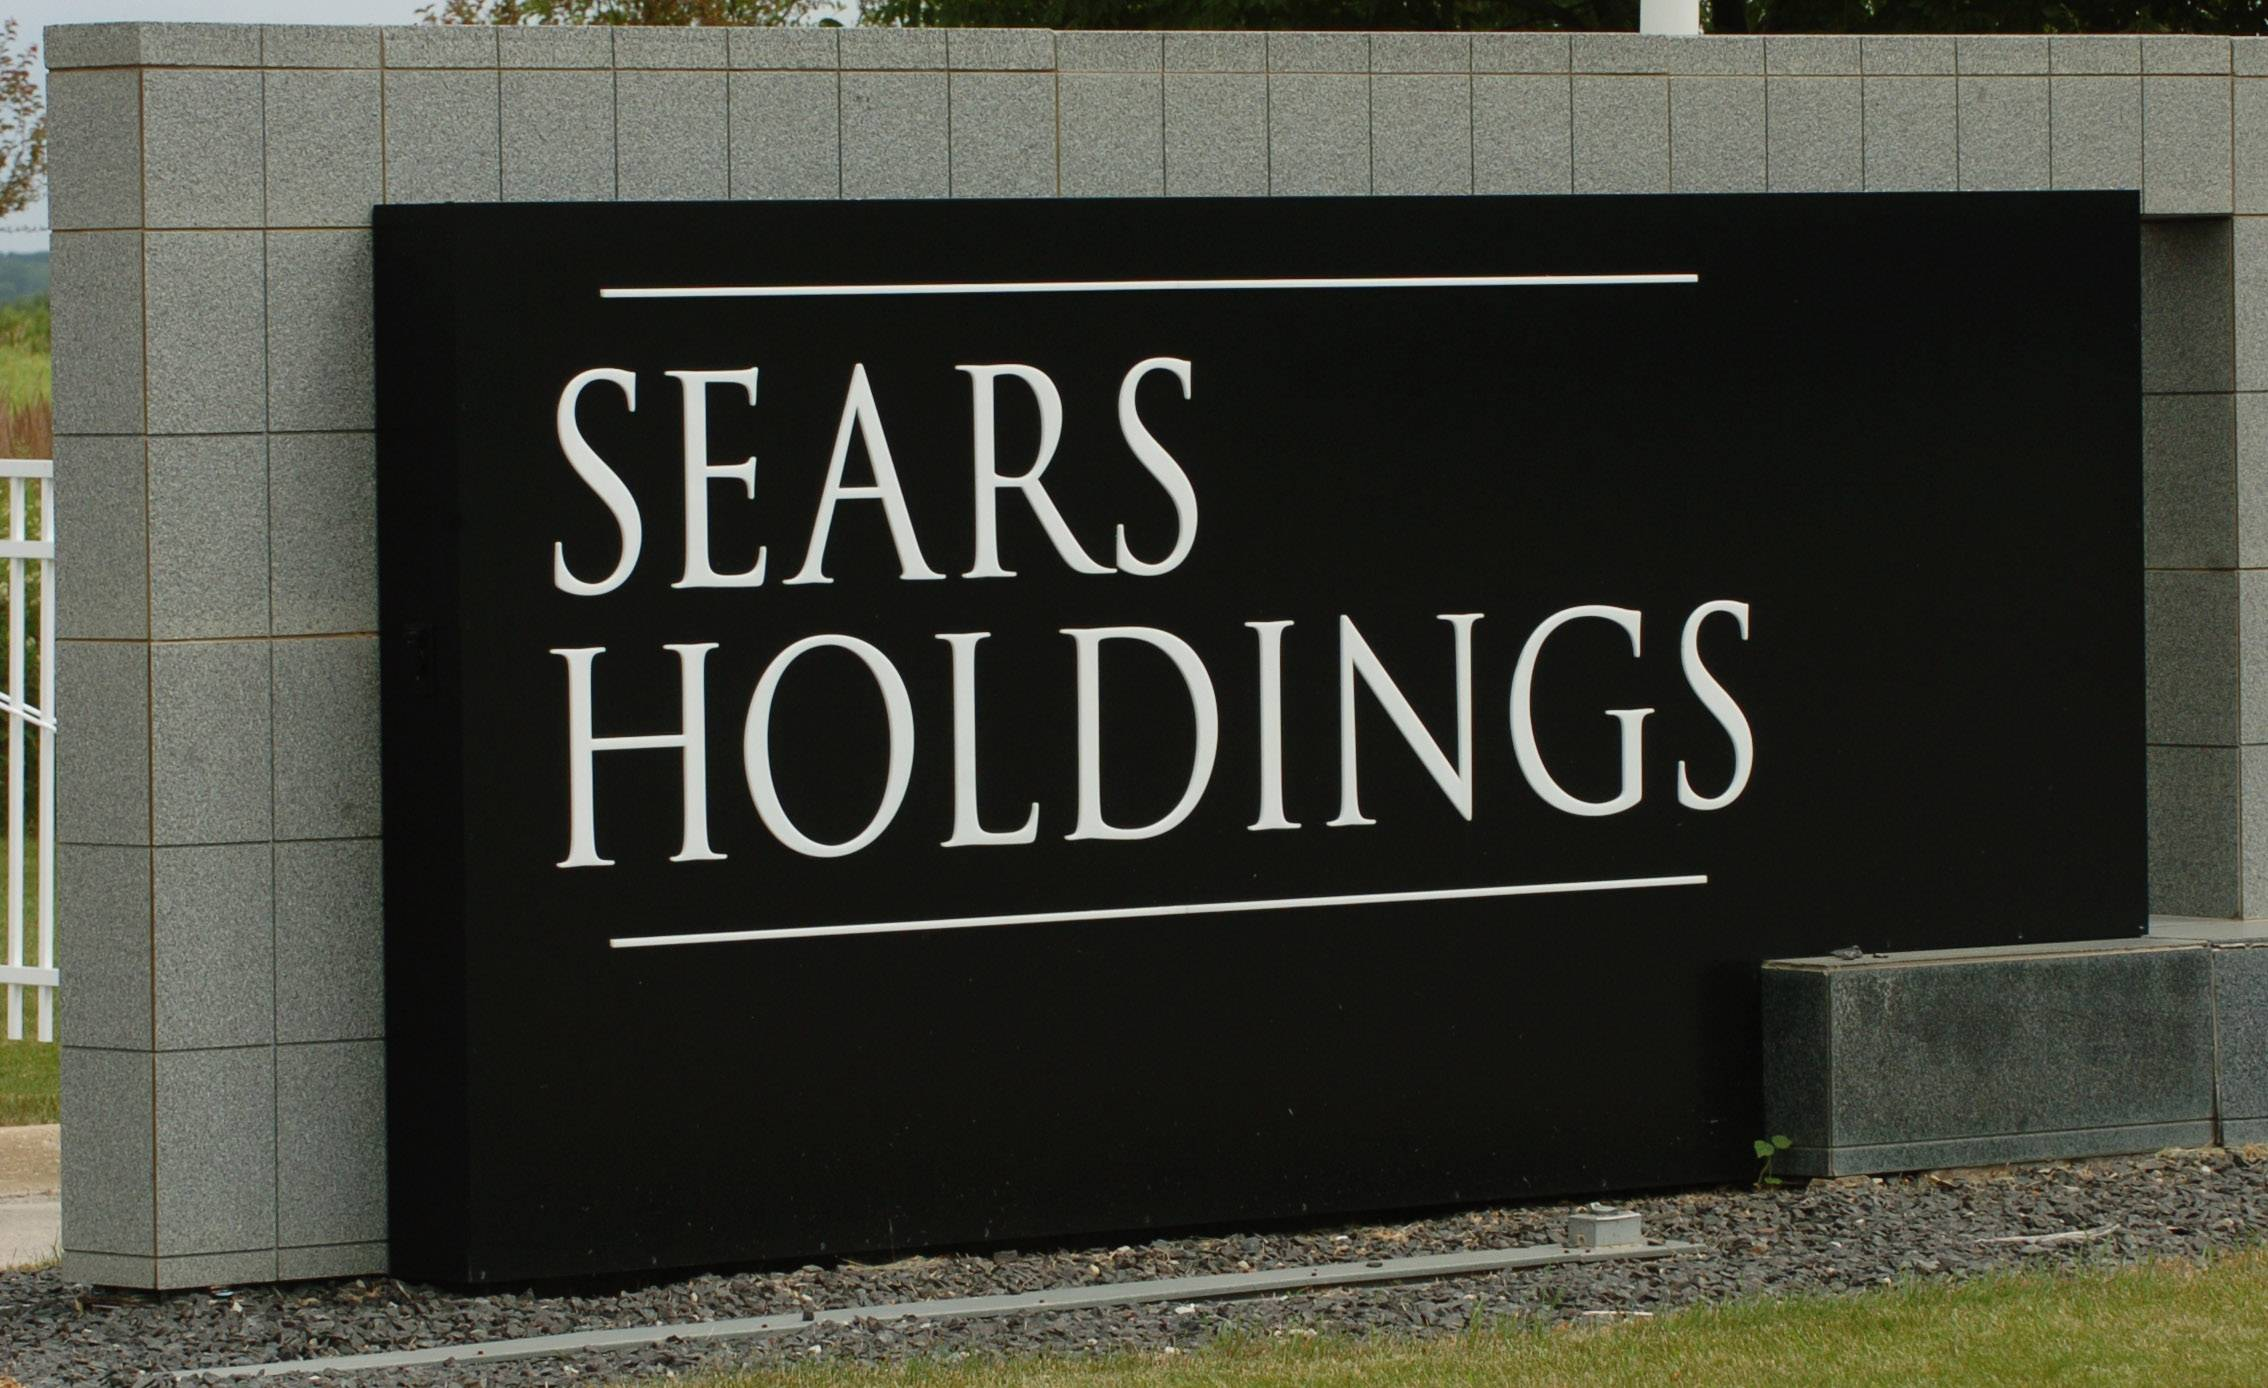 Illinois lawmakers continue talks to keep Sears in Hoffman Estates